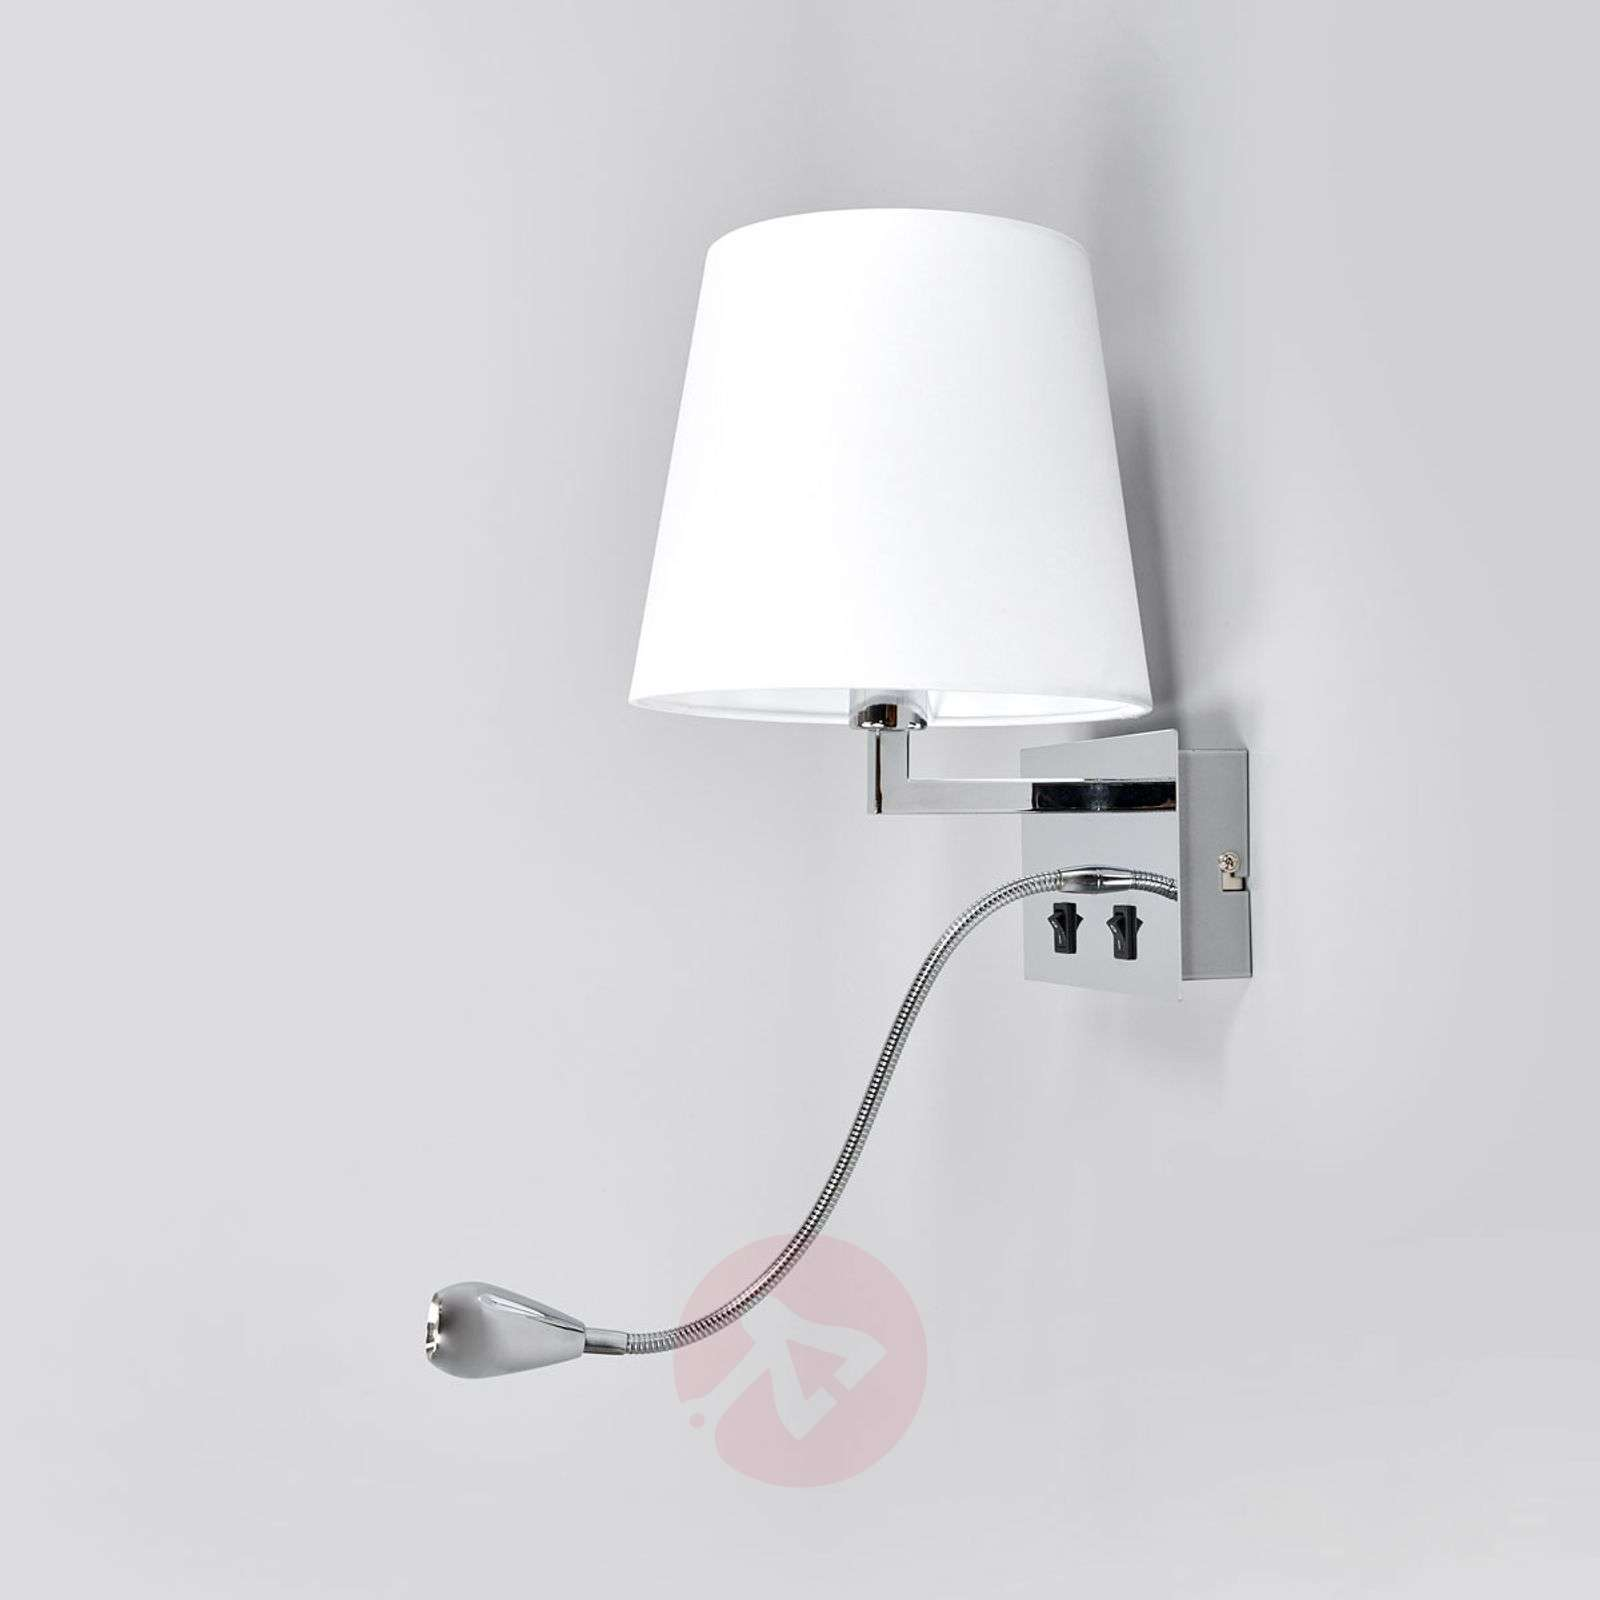 Fabric wall light Leonella with LED reading lamp-9641097-02